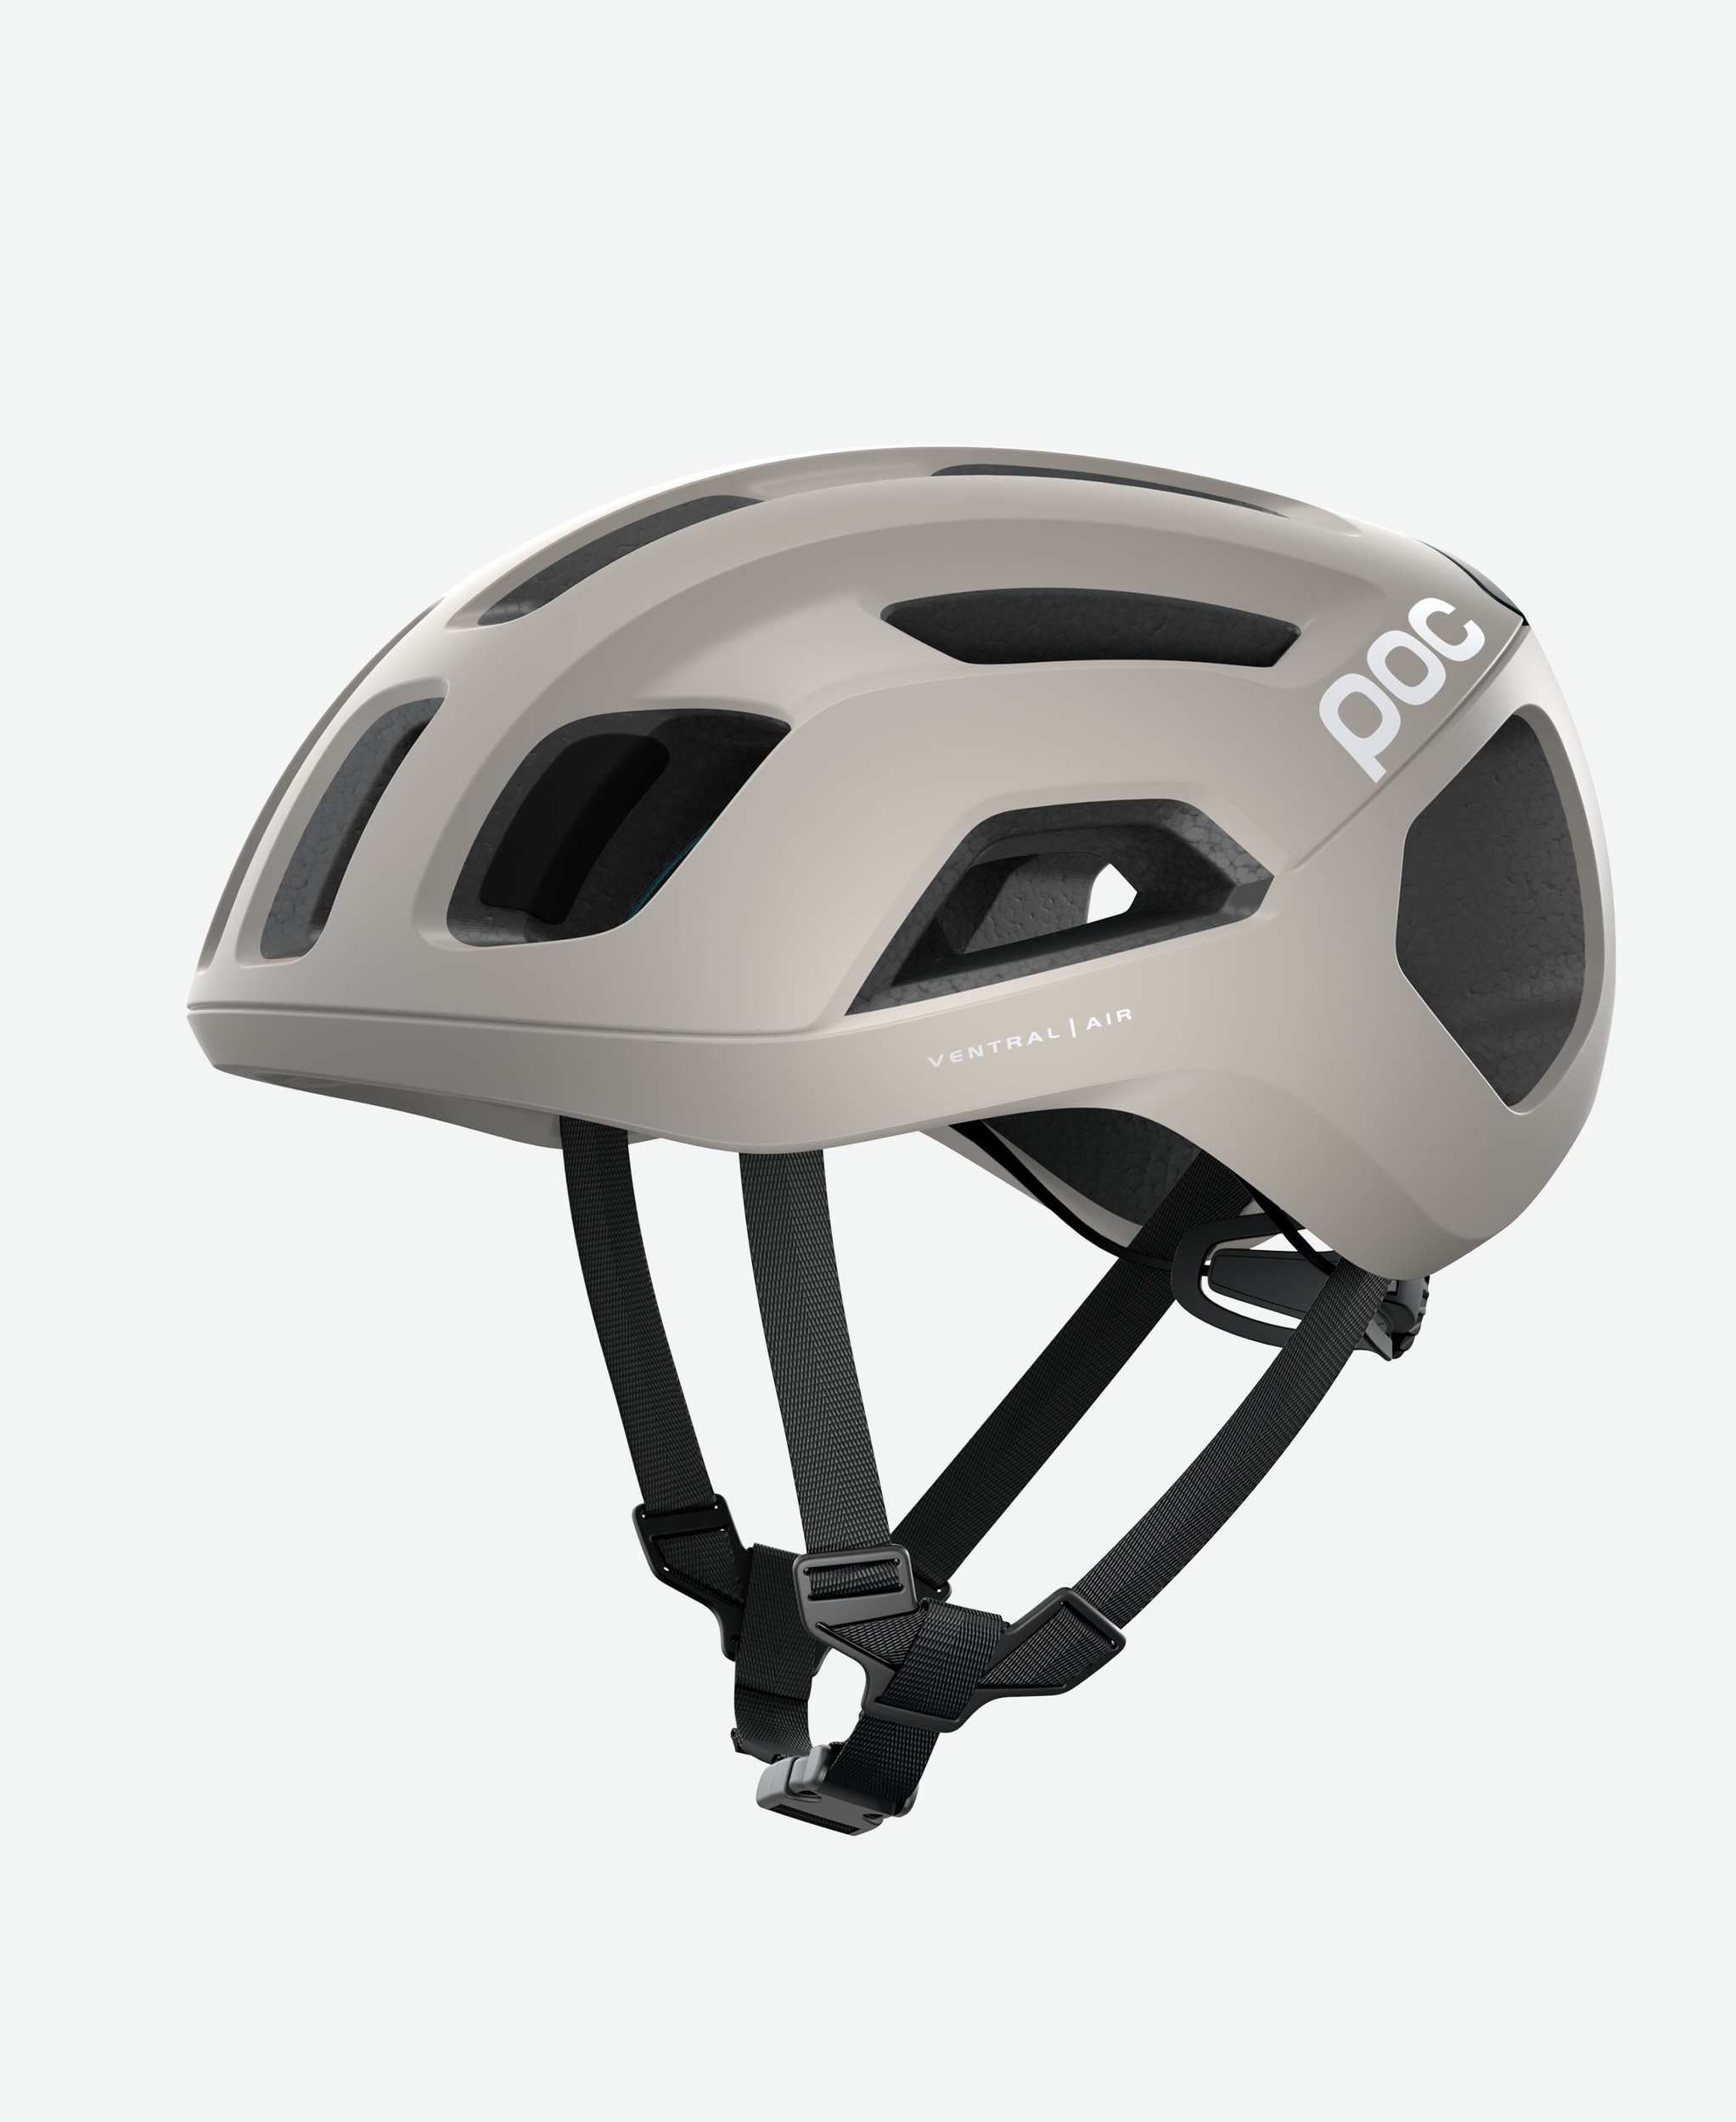 CASQUE POC VENTRAL AIR MOONSTONE